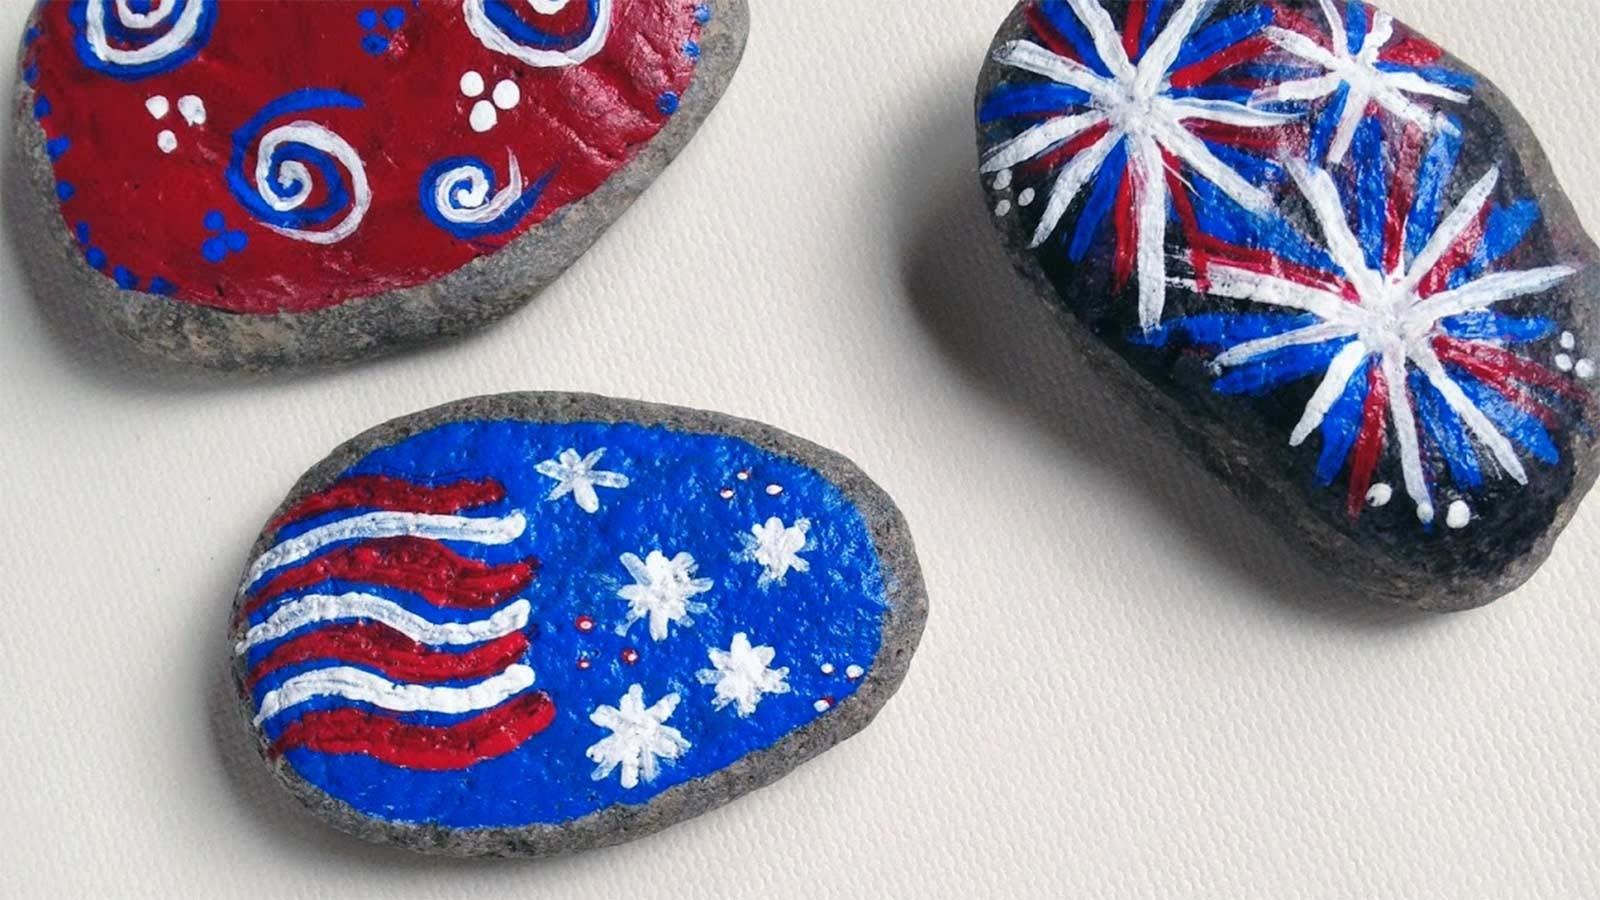 Three rocks painted with a Fourth of July theme.